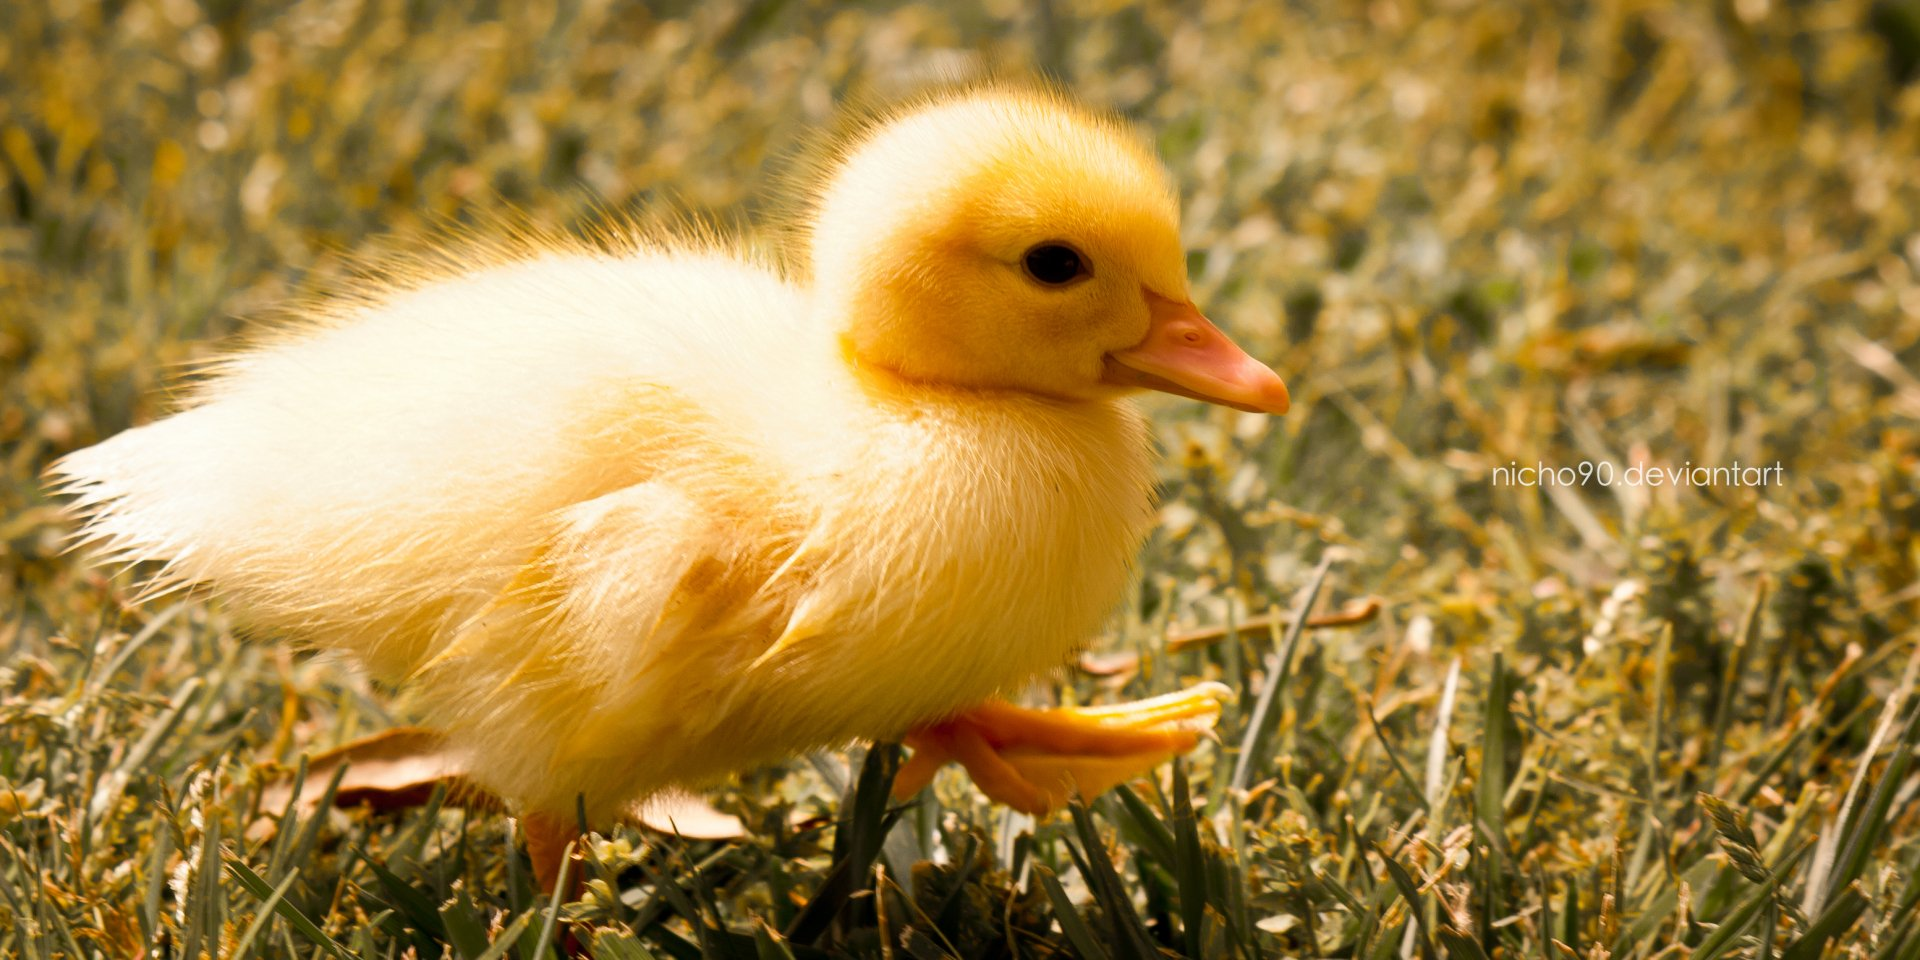 Cute Ducks In Water Wallpaper Duckling Full Hd Wallpaper And Background Image